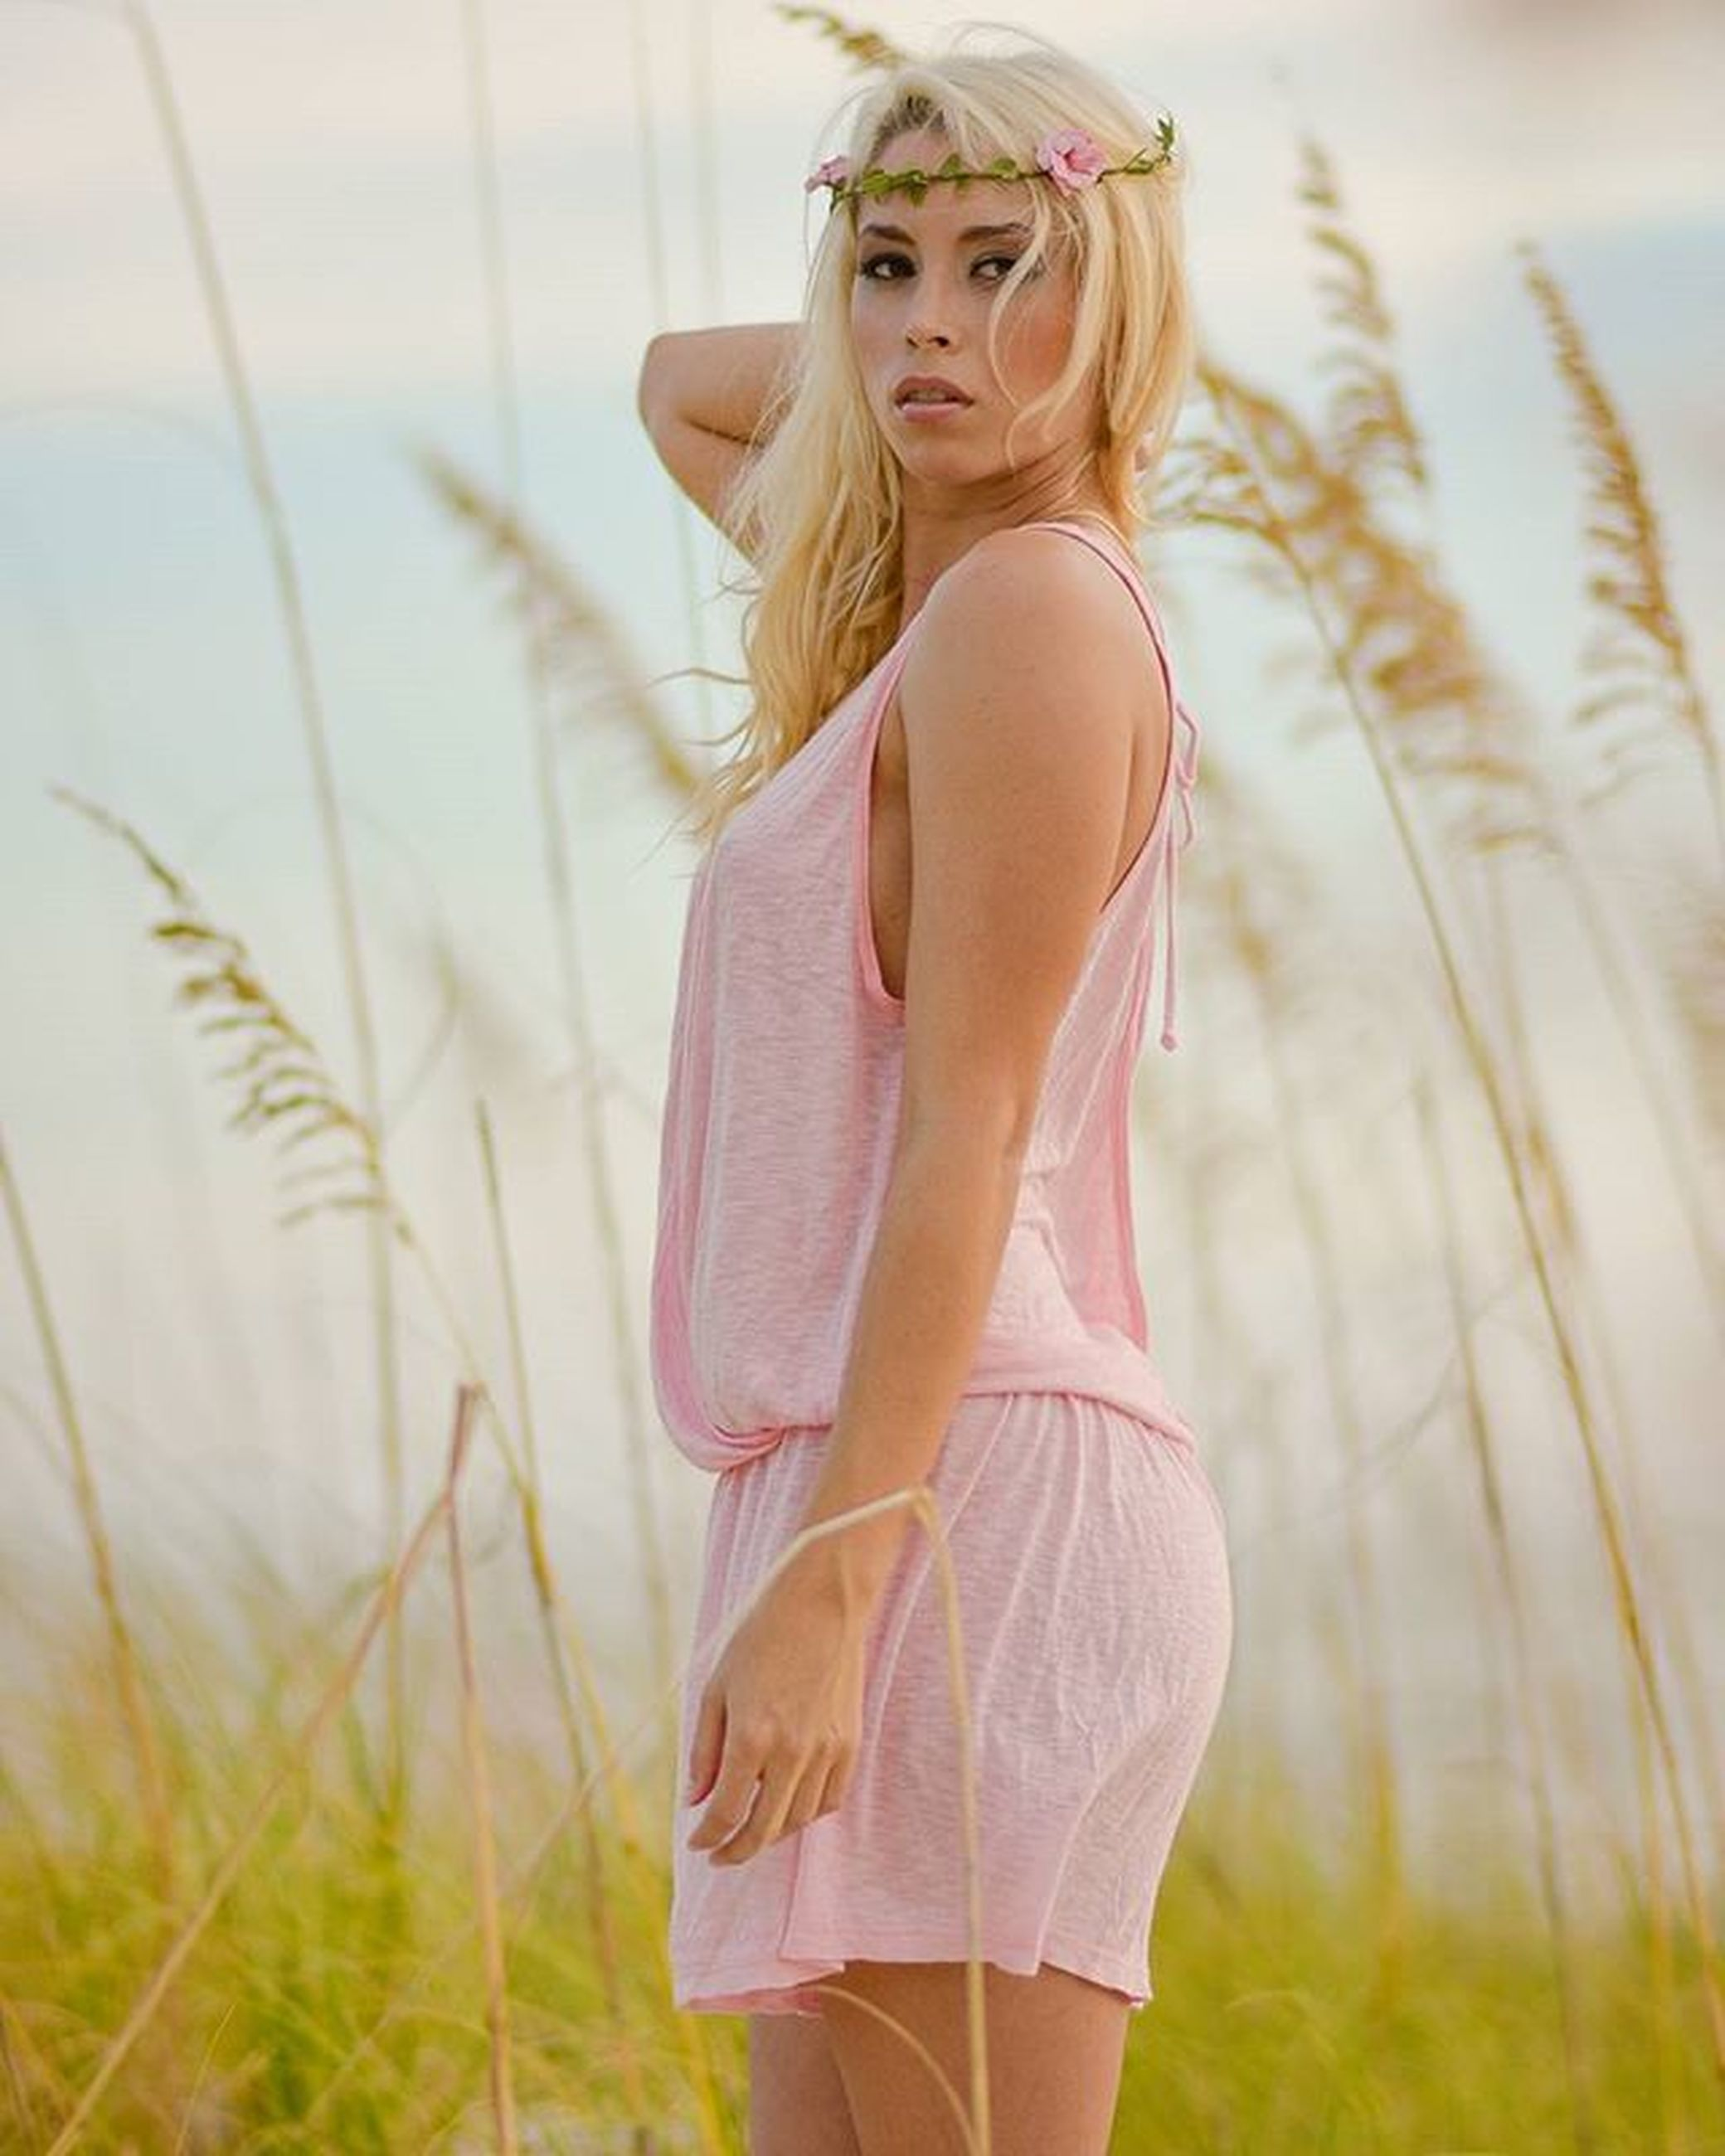 young adult, young women, lifestyles, long hair, leisure activity, person, focus on foreground, standing, three quarter length, casual clothing, beauty, sensuality, dress, front view, field, femininity